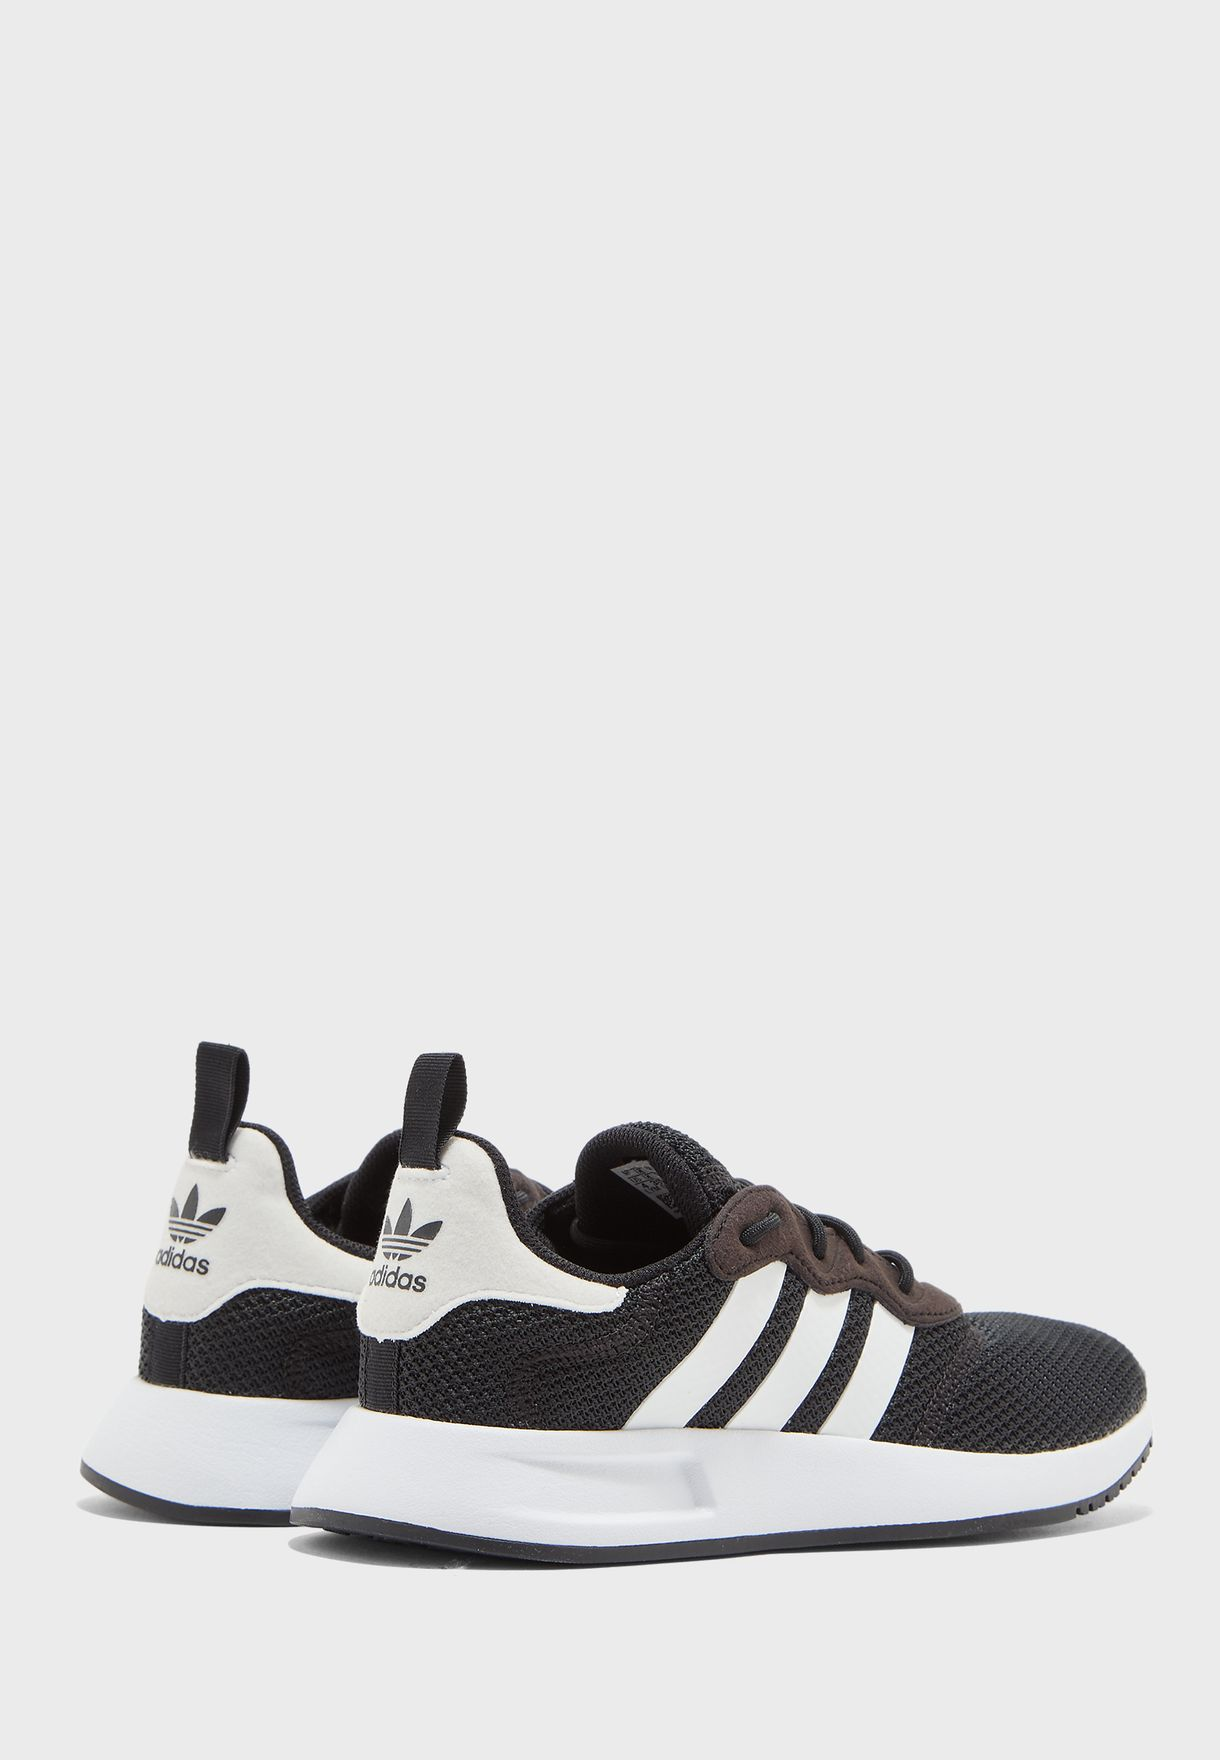 X_PLR Casual Unisex Sneakers Shoes